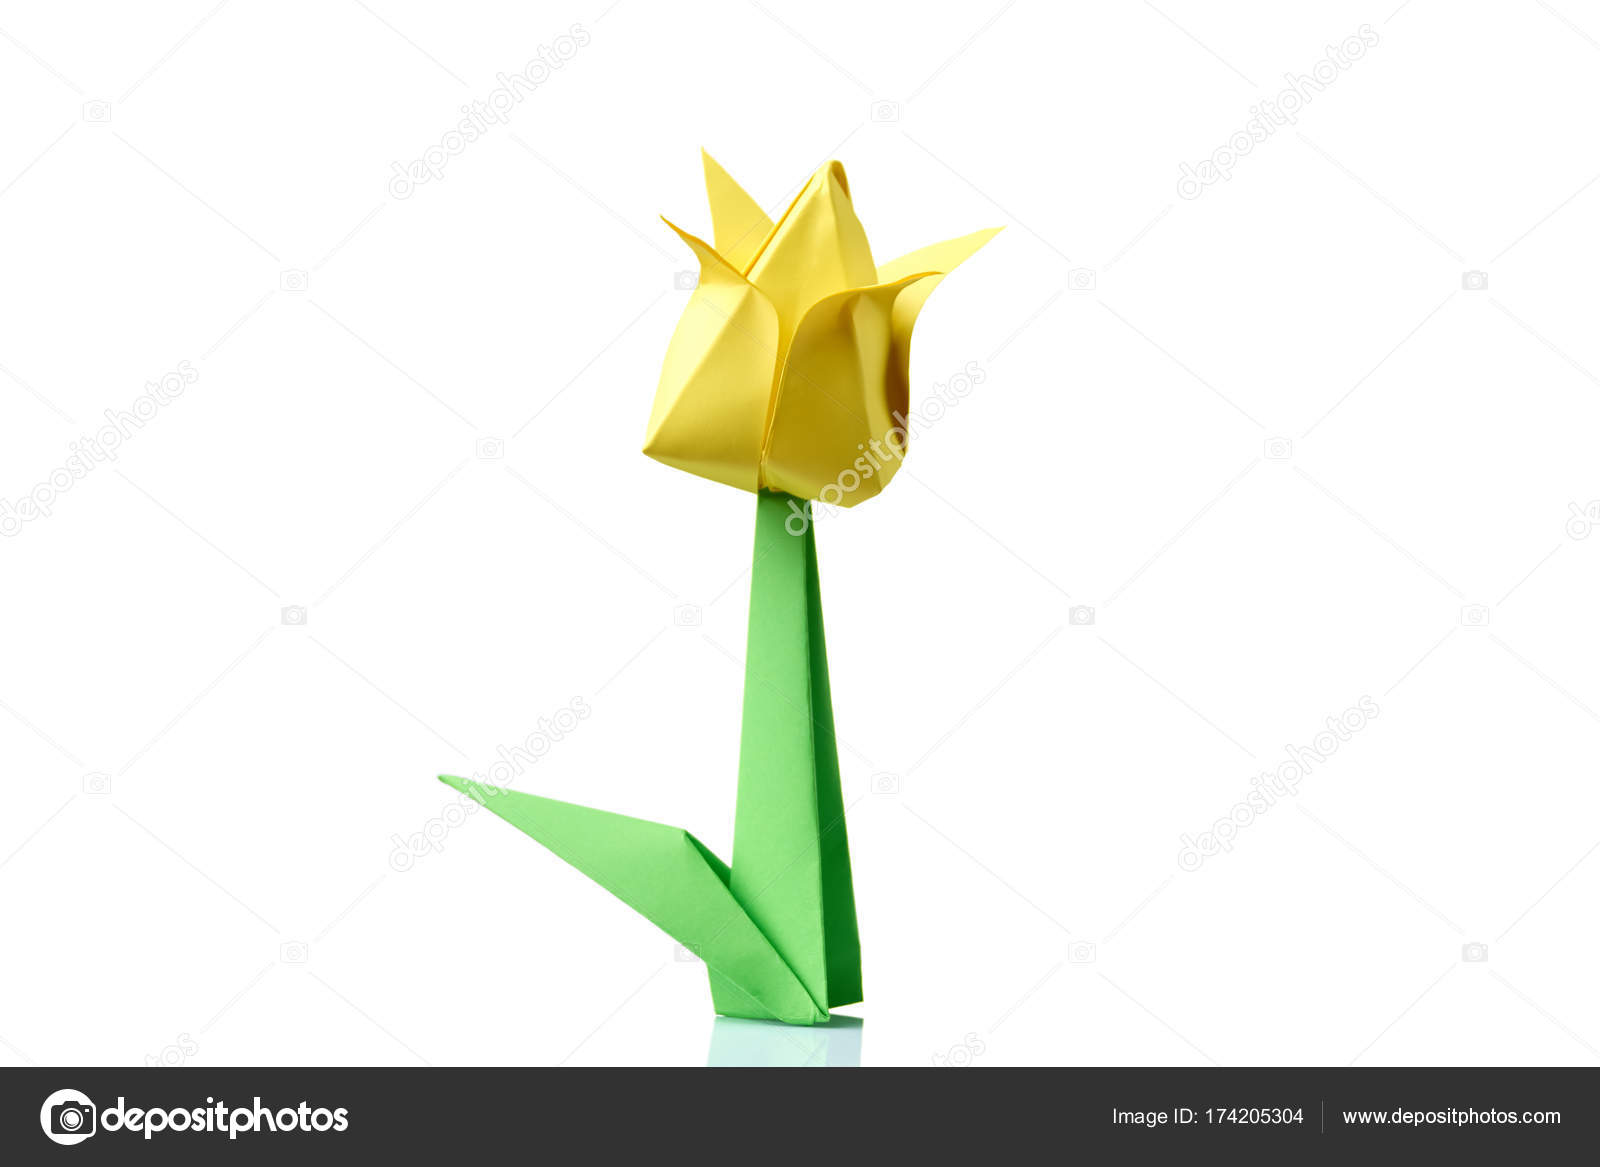 Yellow tulip origami flower stock photo denisfilm 174205304 yellow tulip origami flower traditional model of bulb and leaf simple origami crafting for beginners photo by denisfilm mightylinksfo